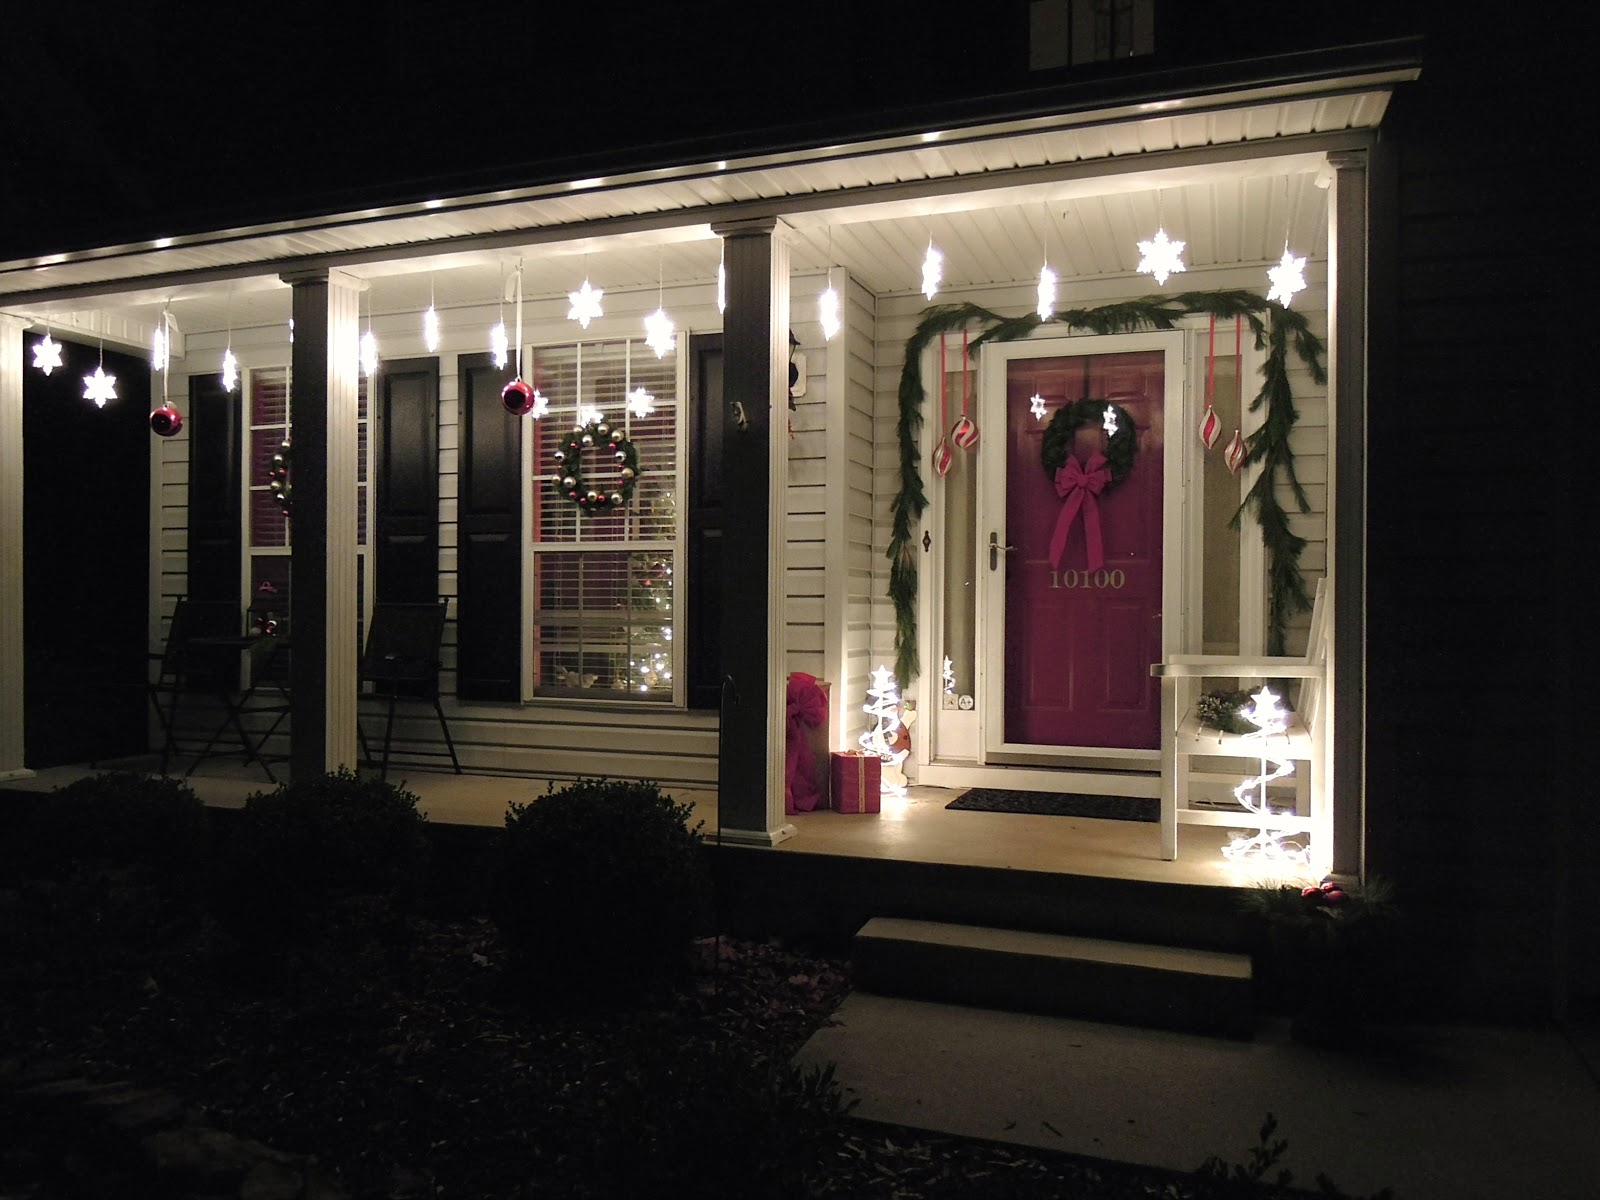 Outdoor Hanging Front Porch Lights: Holiday Porch Decorations